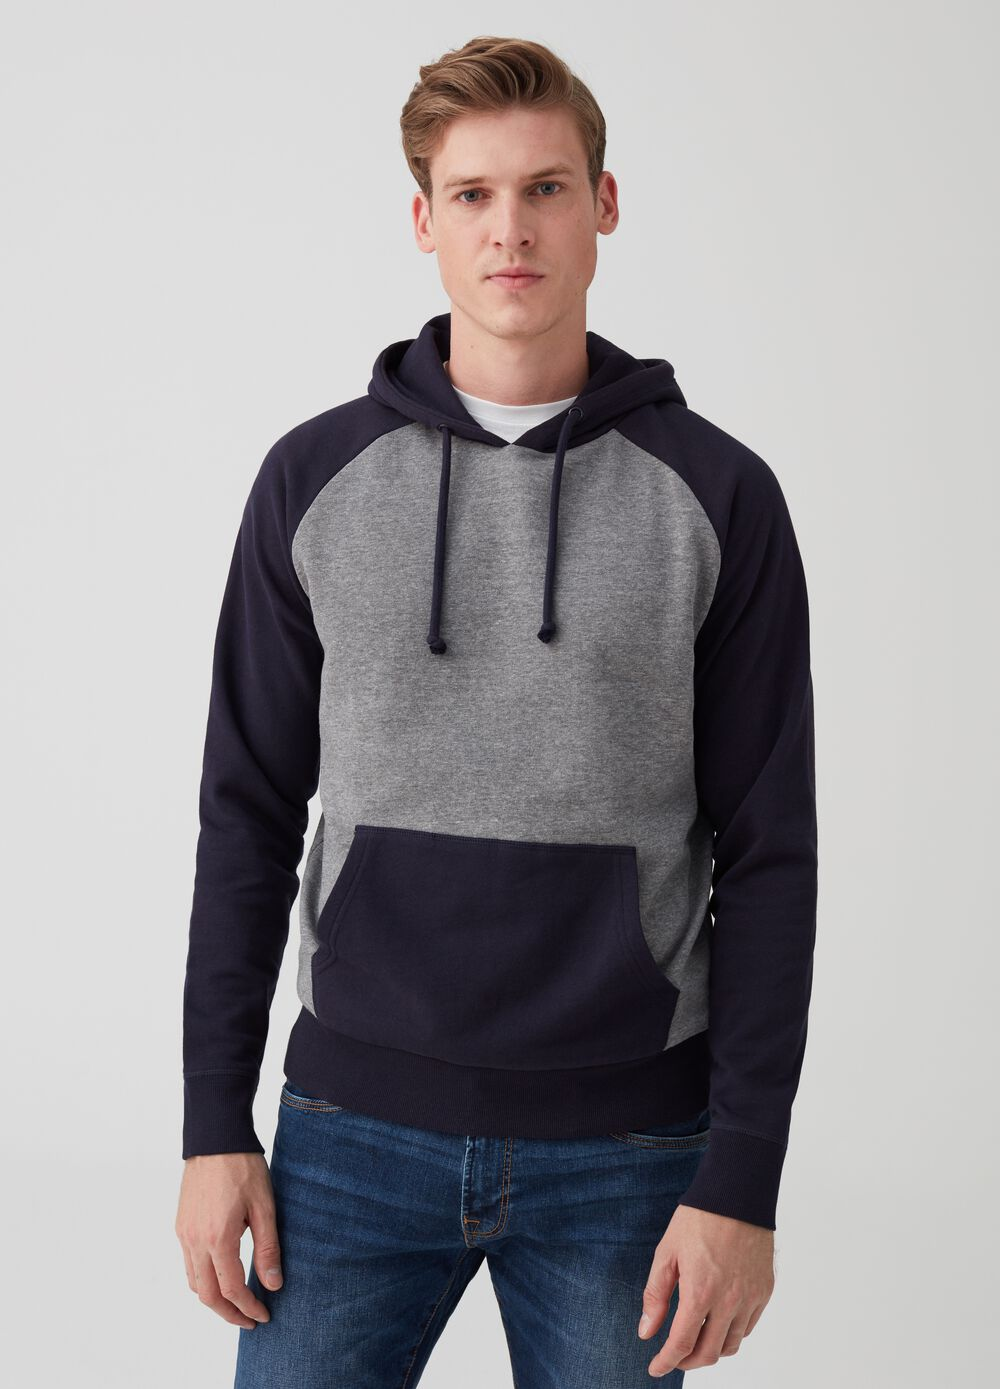 Sweatshirt with hood and pouch pocket